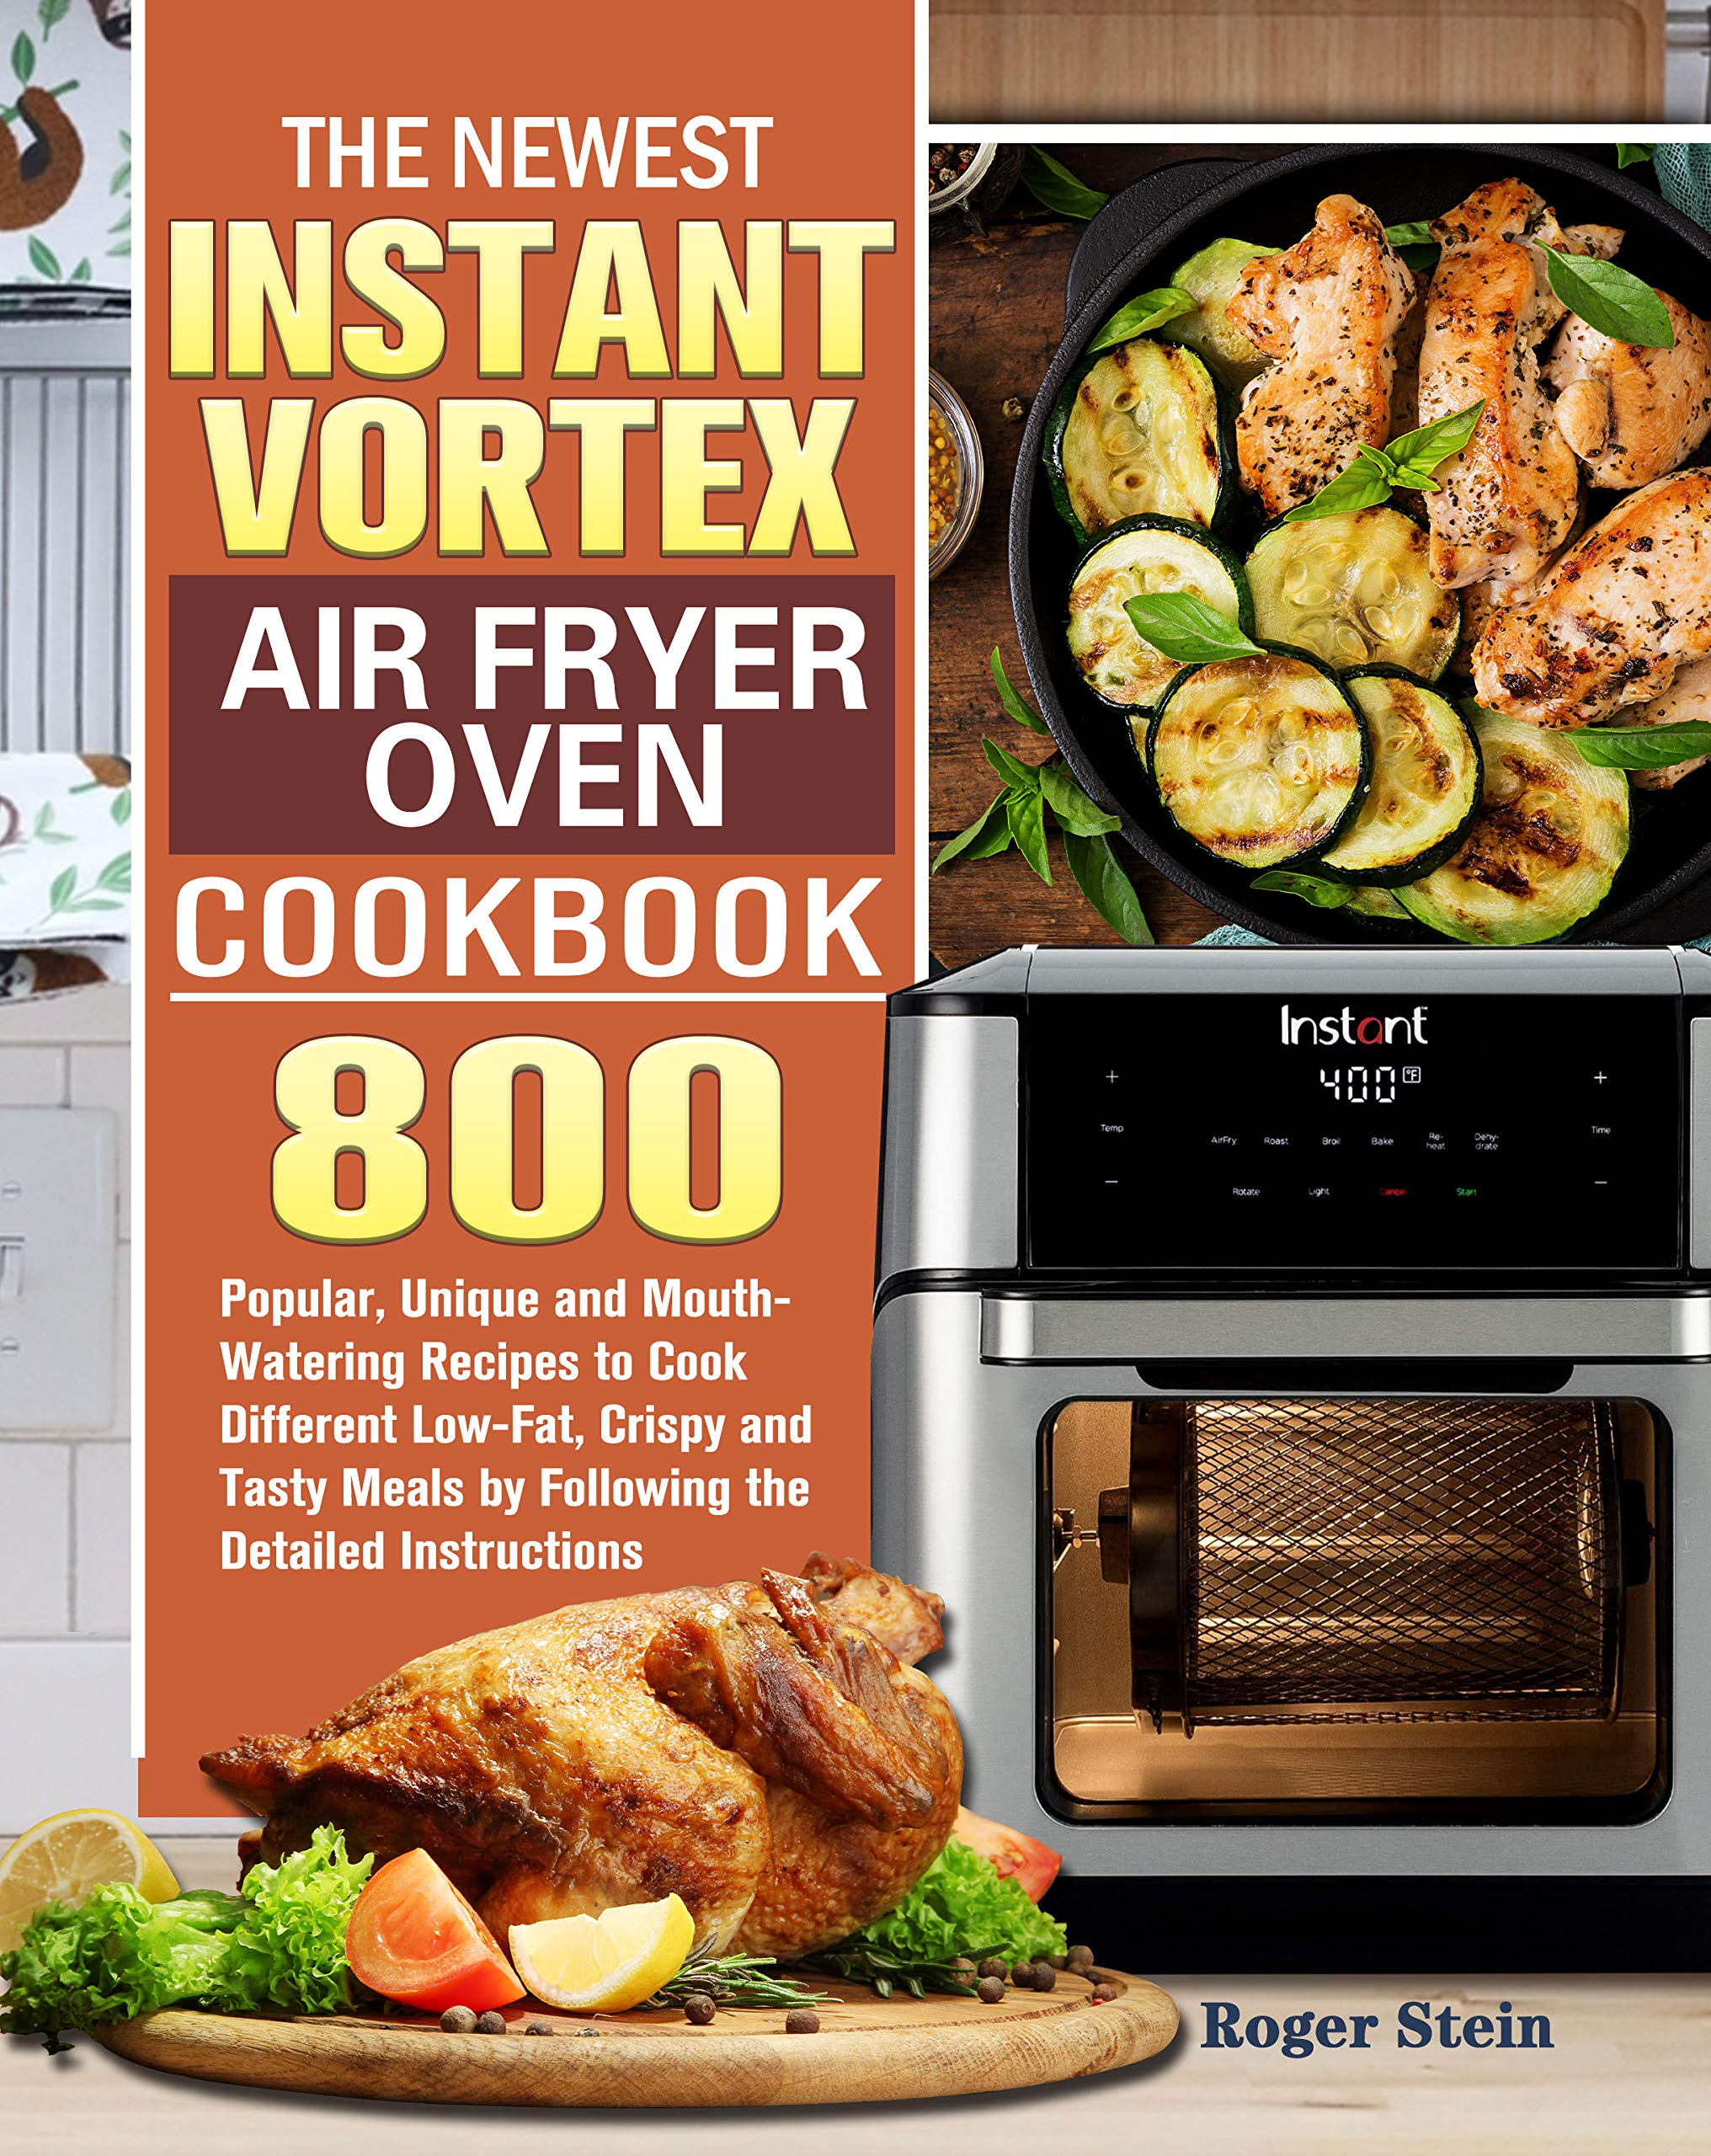 The Newest Instant Vortex Air Fryer Oven Cookbook: 800 Popular, Unique and Mouth-Watering Recipes to Cook Different Low-Fat, Crispy and Tasty Meals by Following the Detailed Instructions